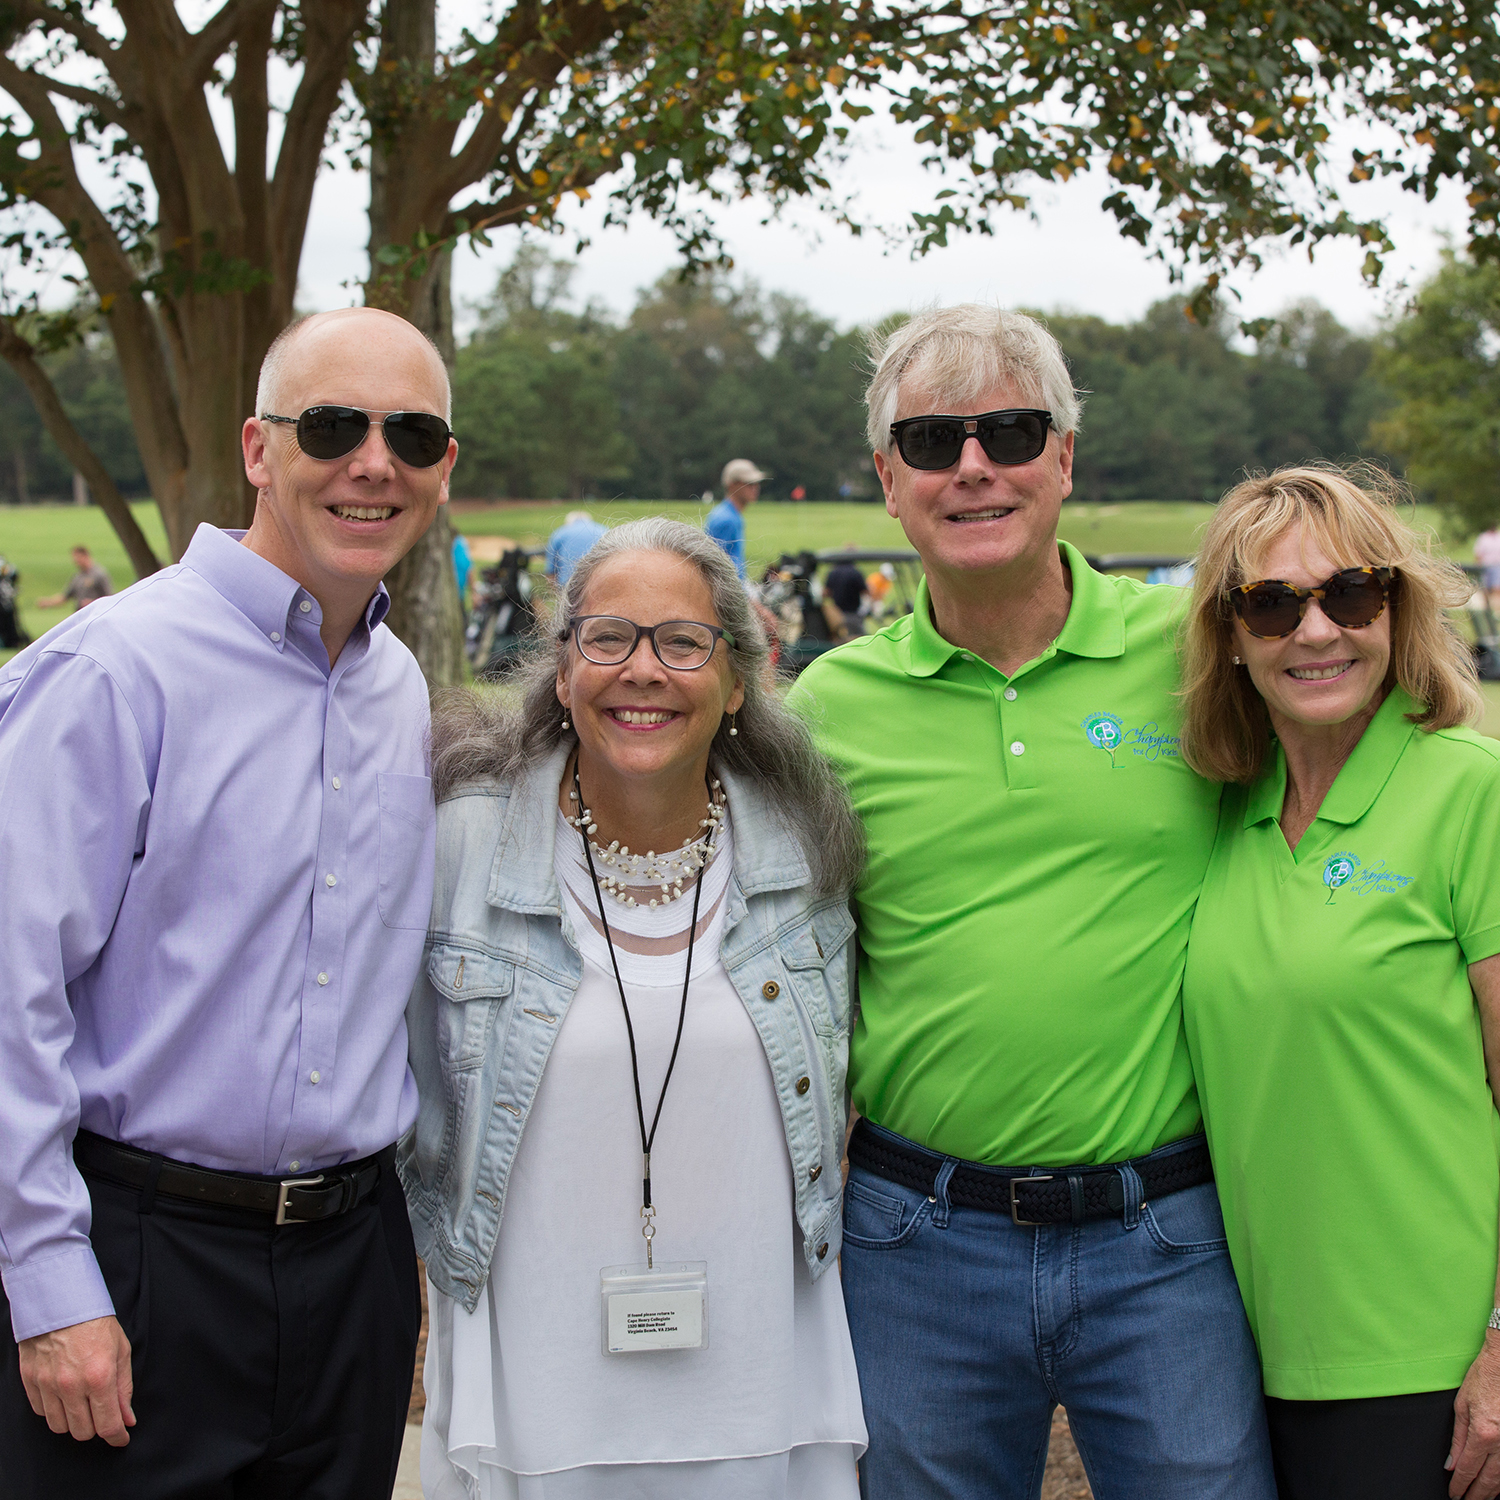 00318-champions-for-kids-event-photography-bayville-country-club-don-monteaux-photography.jpg